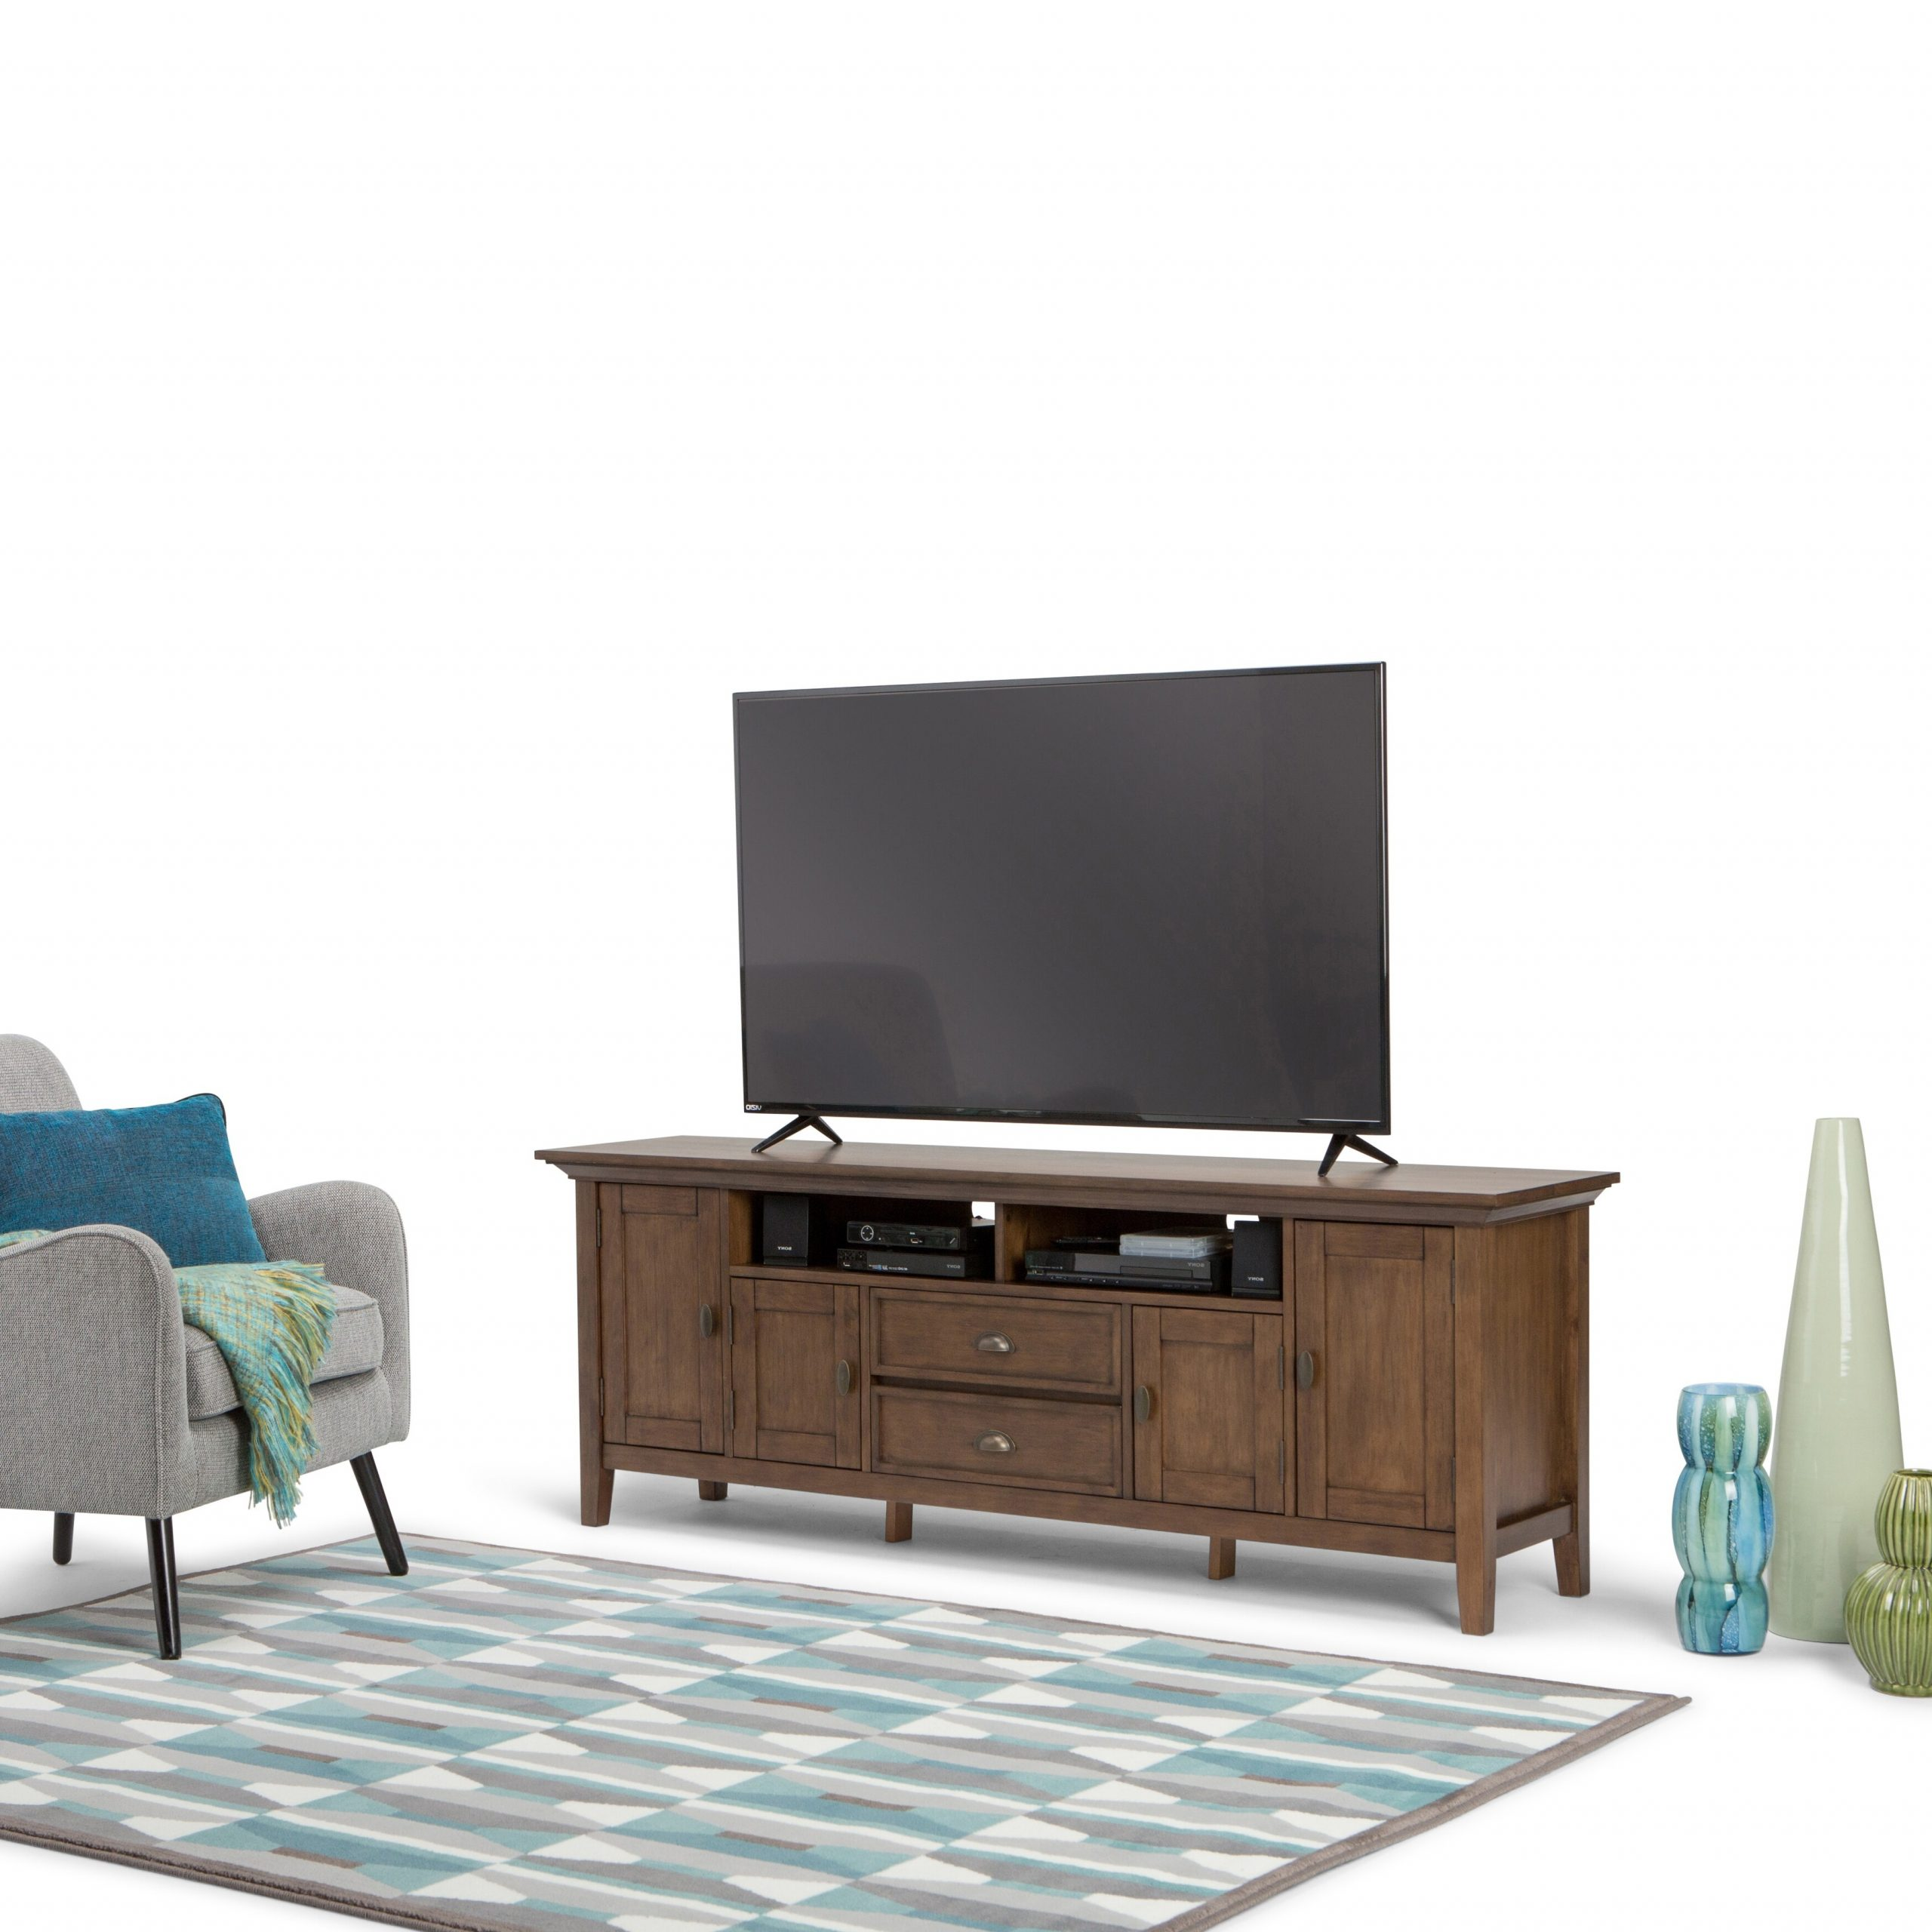 """Widely Used Miconia Solid Wood Tv Stands For Tvs Up To 70"""" With Wyndenhall Mansfield Solid Wood 72 Inch Wide Rustic Tv (View 18 of 25)"""